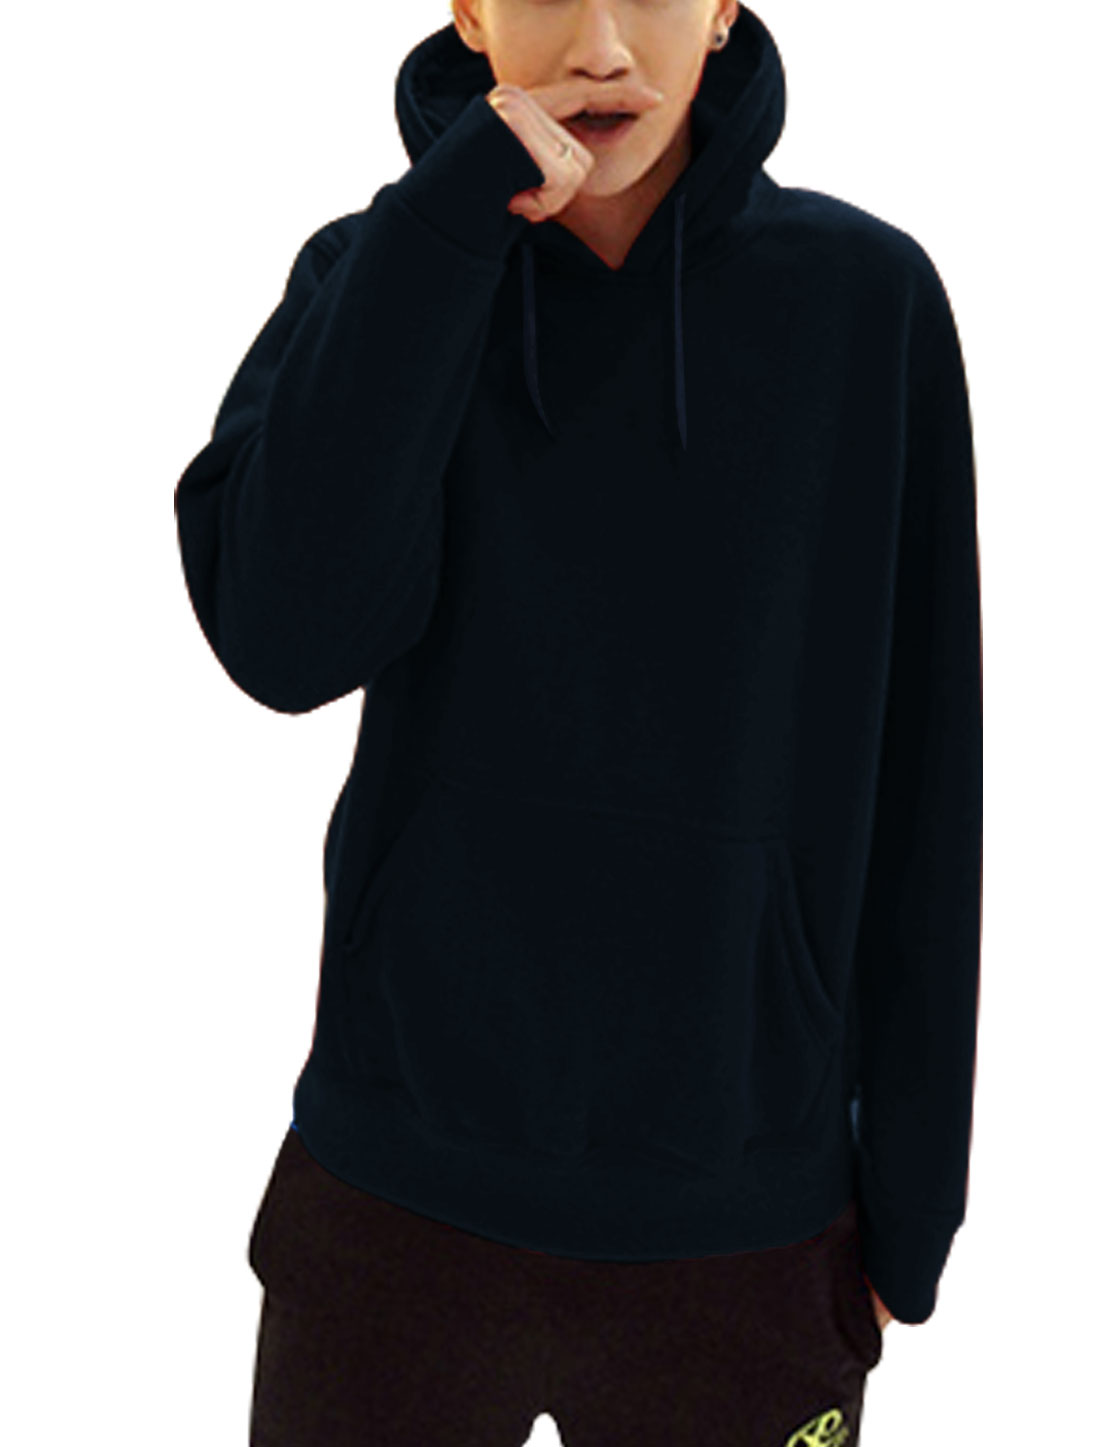 Men Single Kangaroo Pcoket Drawcord Chic Thick Hoodie Navy Blue L